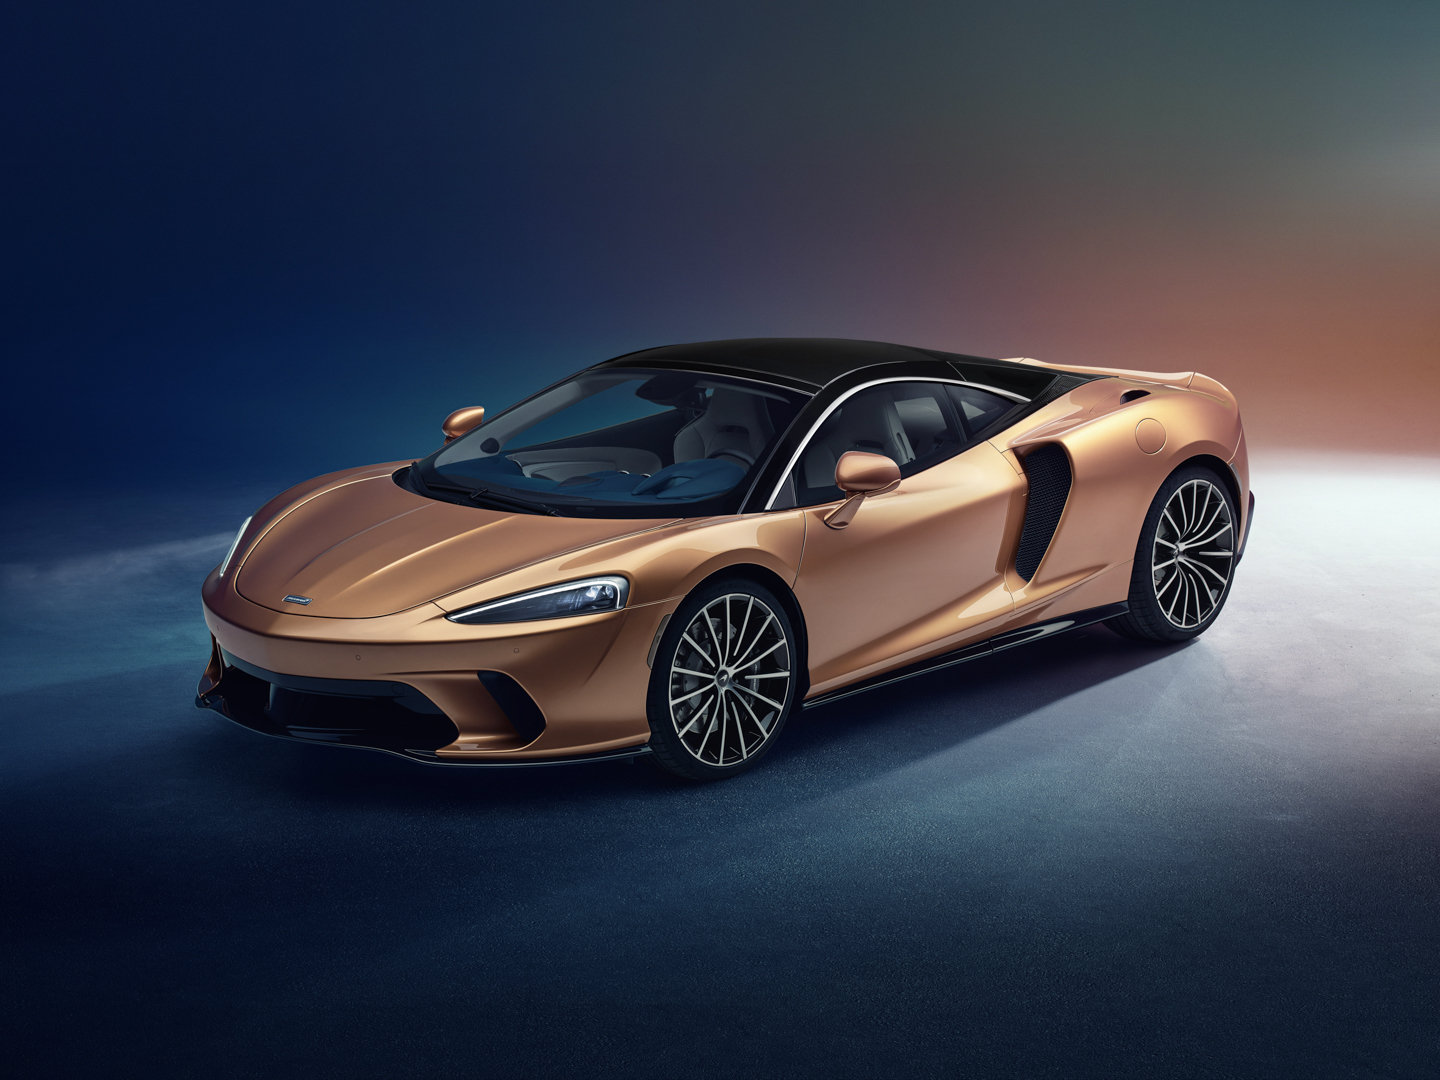 Does the new McLaren GT make the Audi R8 irrelevant?